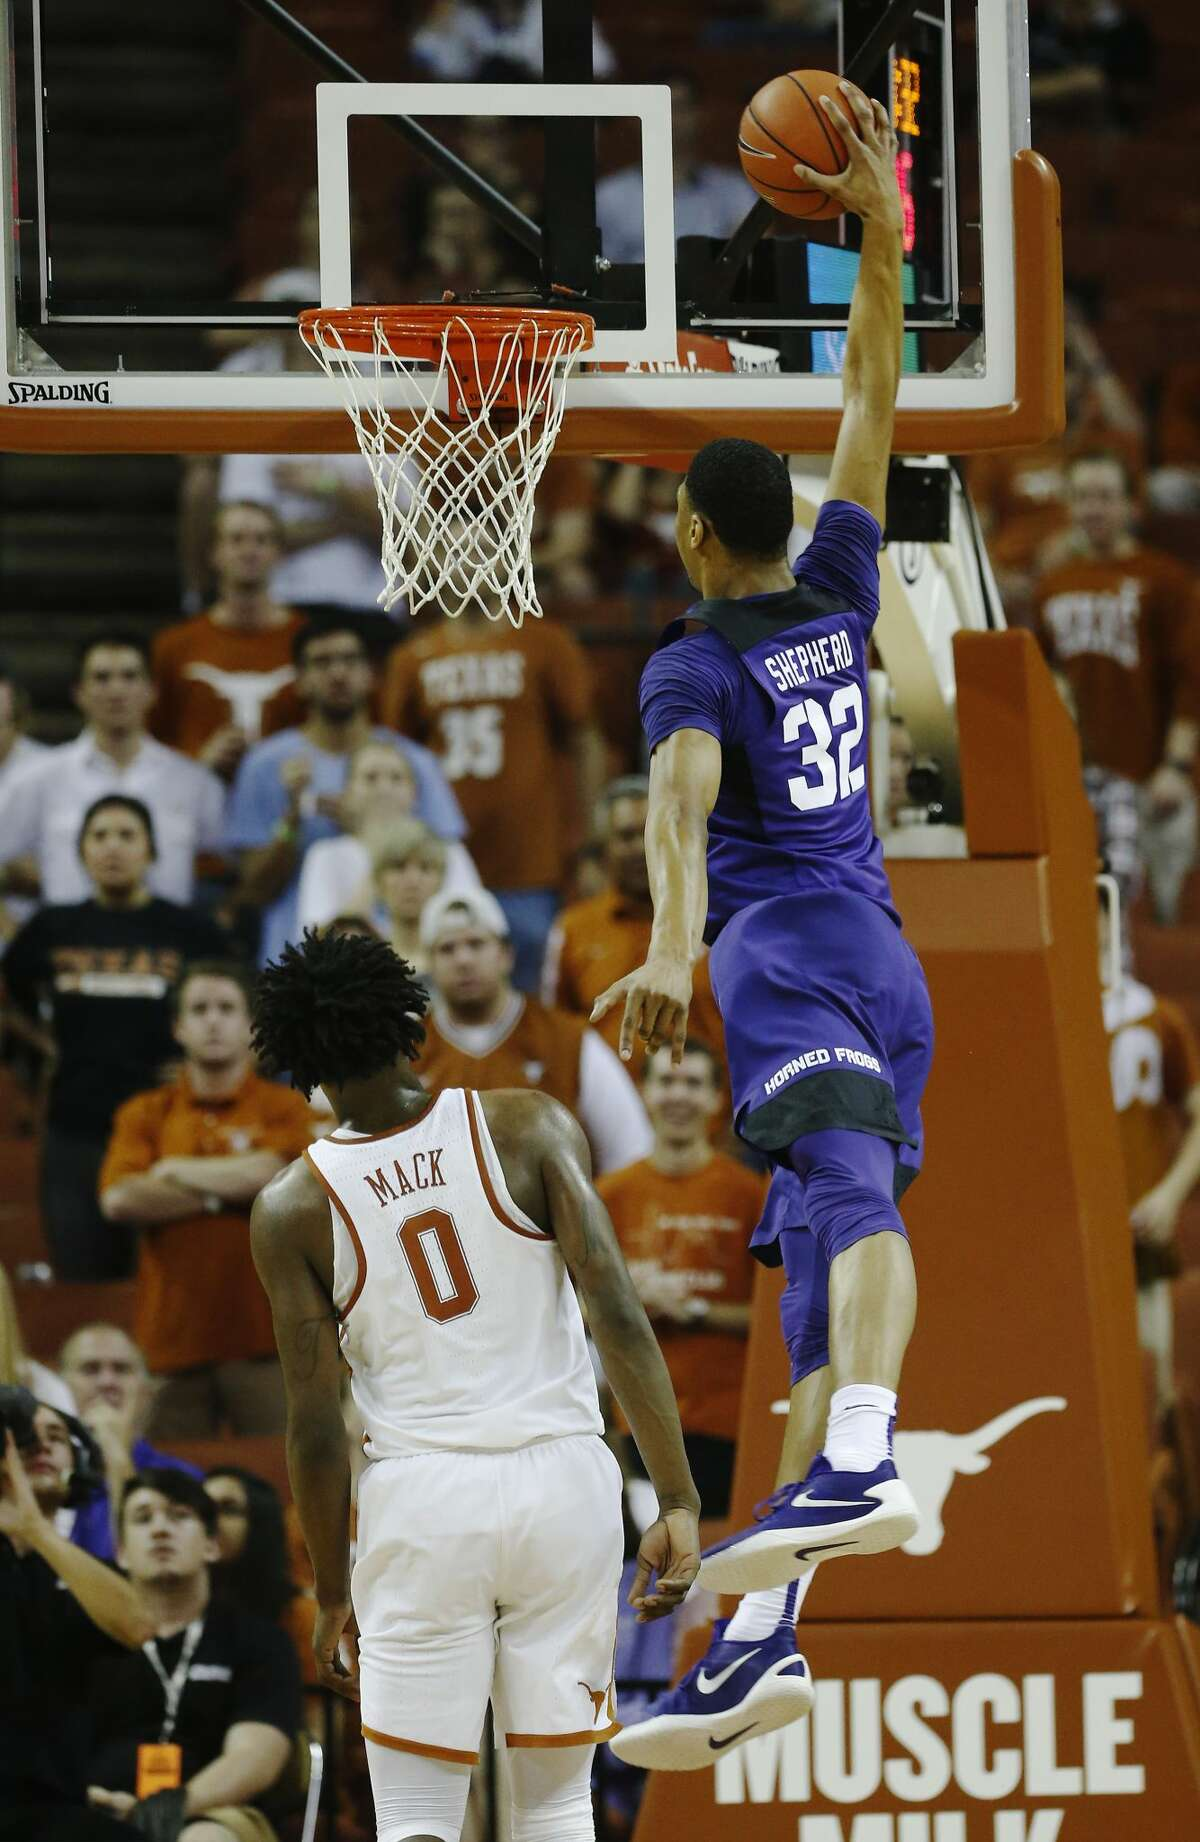 TCU's Karviar Shepherd (32) goes in for a dunk against Texas' Tevin Mack (00) during their game at the Frank Irwin Center in Austin on Wednesday, Jan. 11, 2017. TCU defeated Texas, 64-61.(Kin Man Hui/San Antonio Express-News)